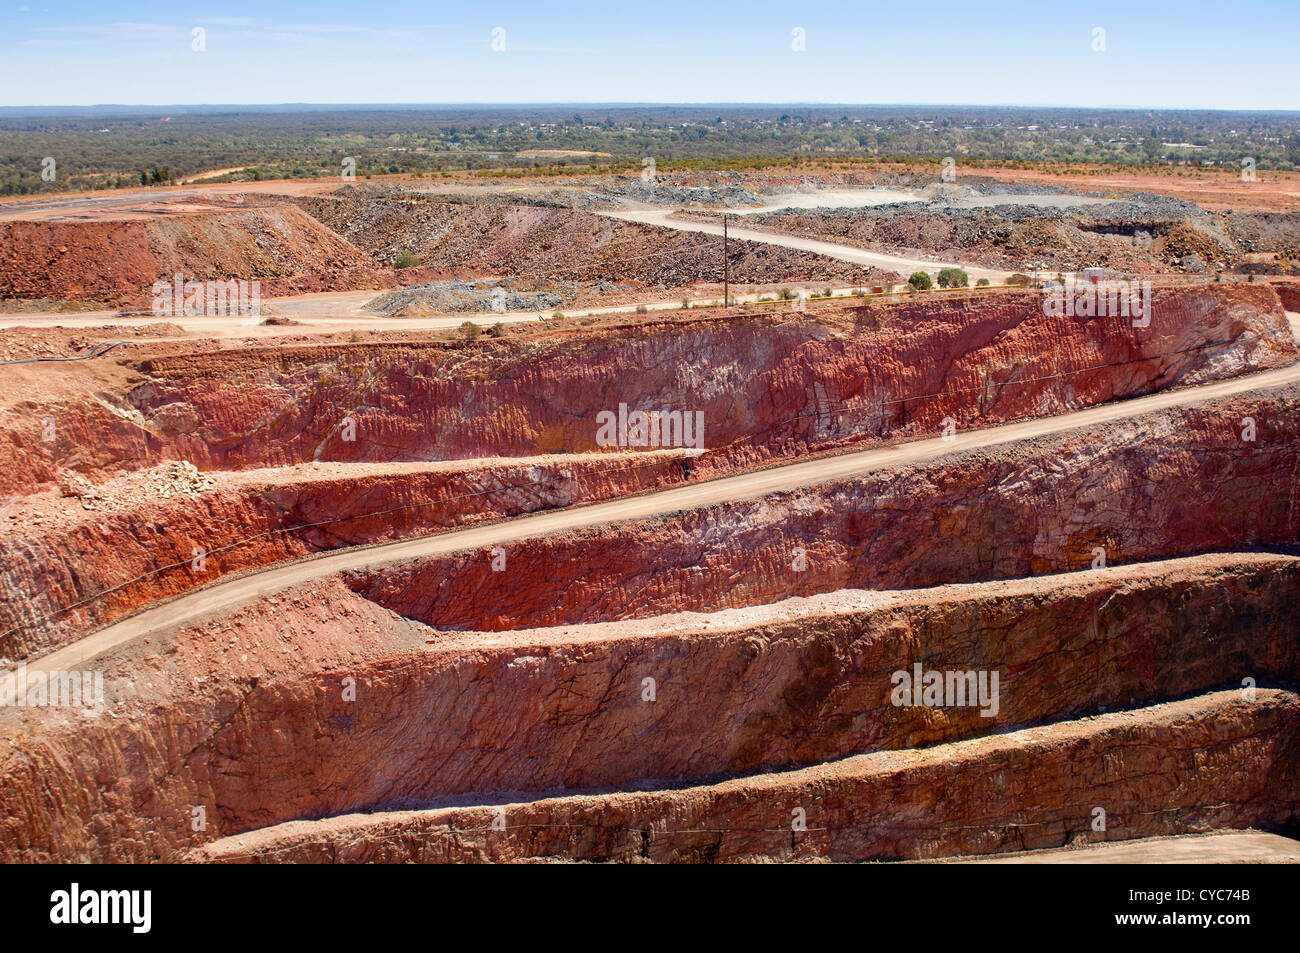 Mining in Australia at the Cobar mine site - Stock Image